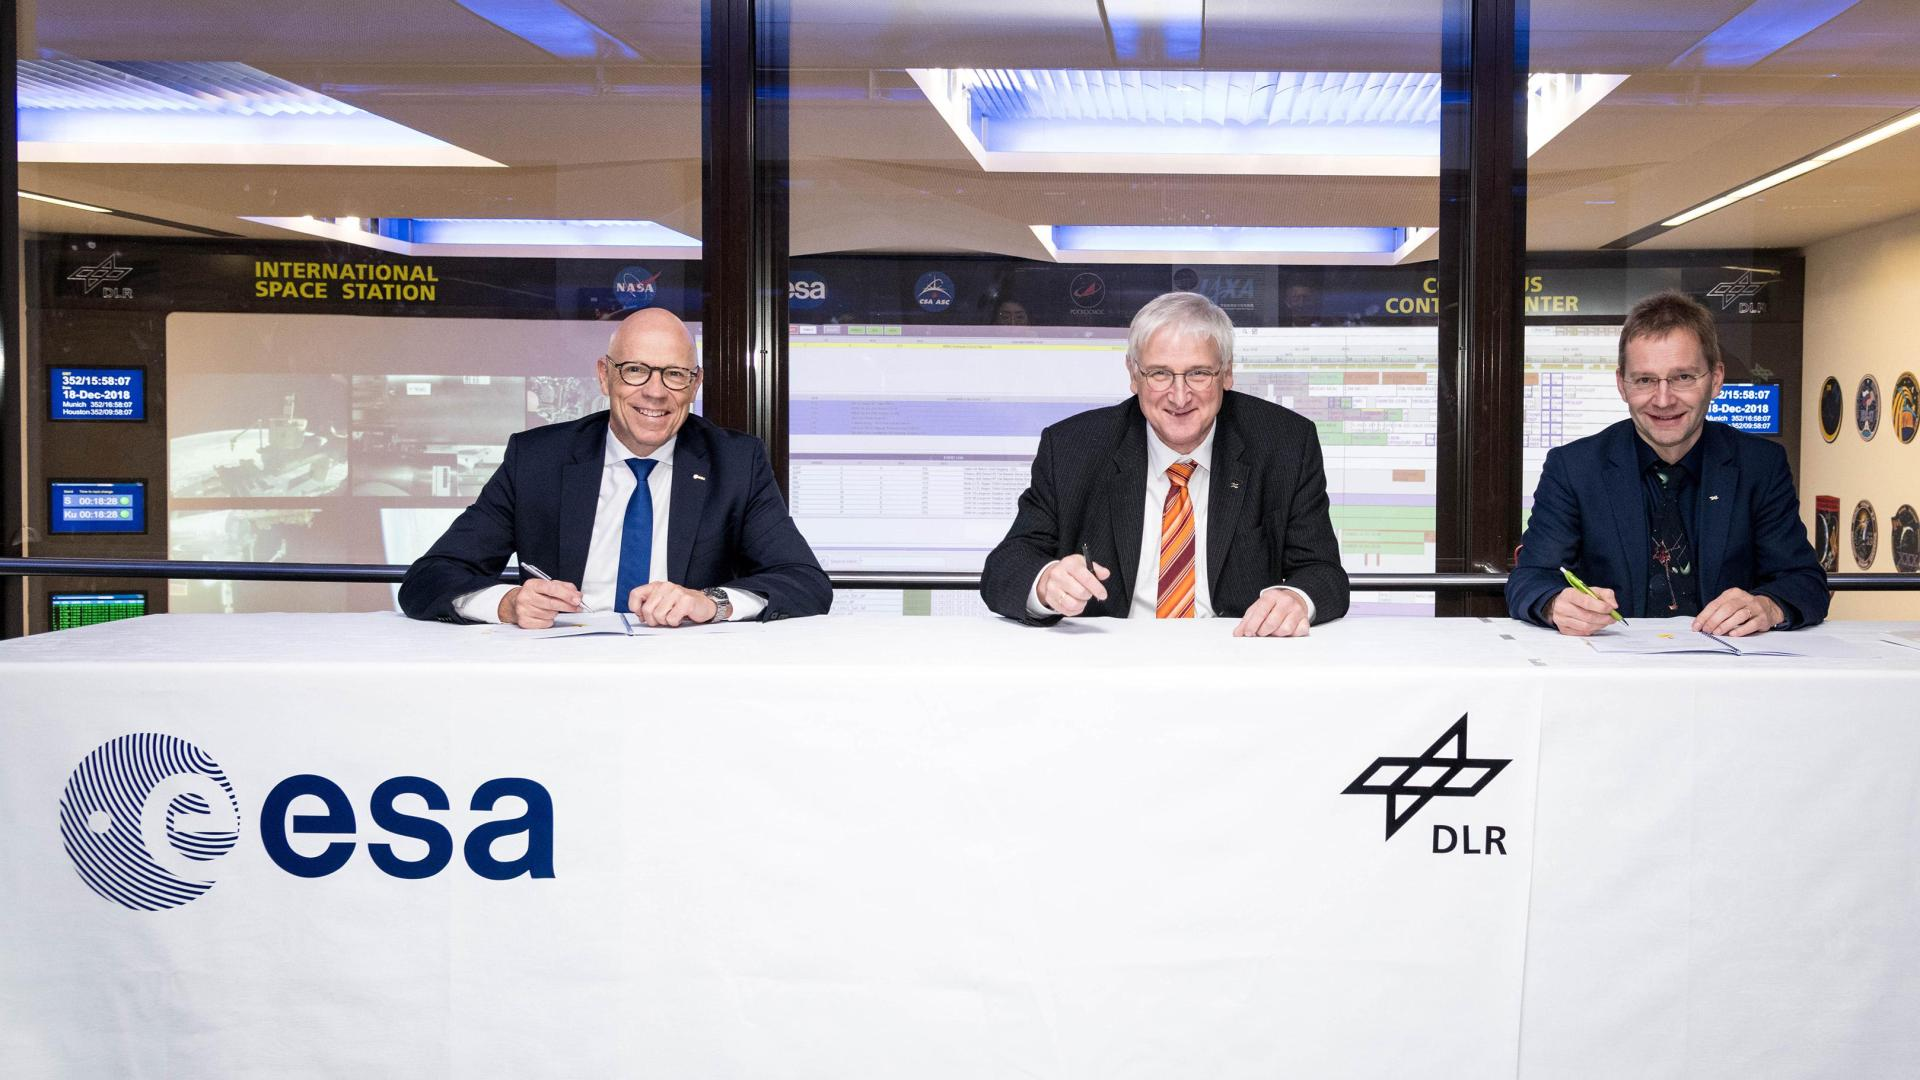 Rolf Densing, Hansjörg Dittus and Felix Huber sign the cooperation agreement